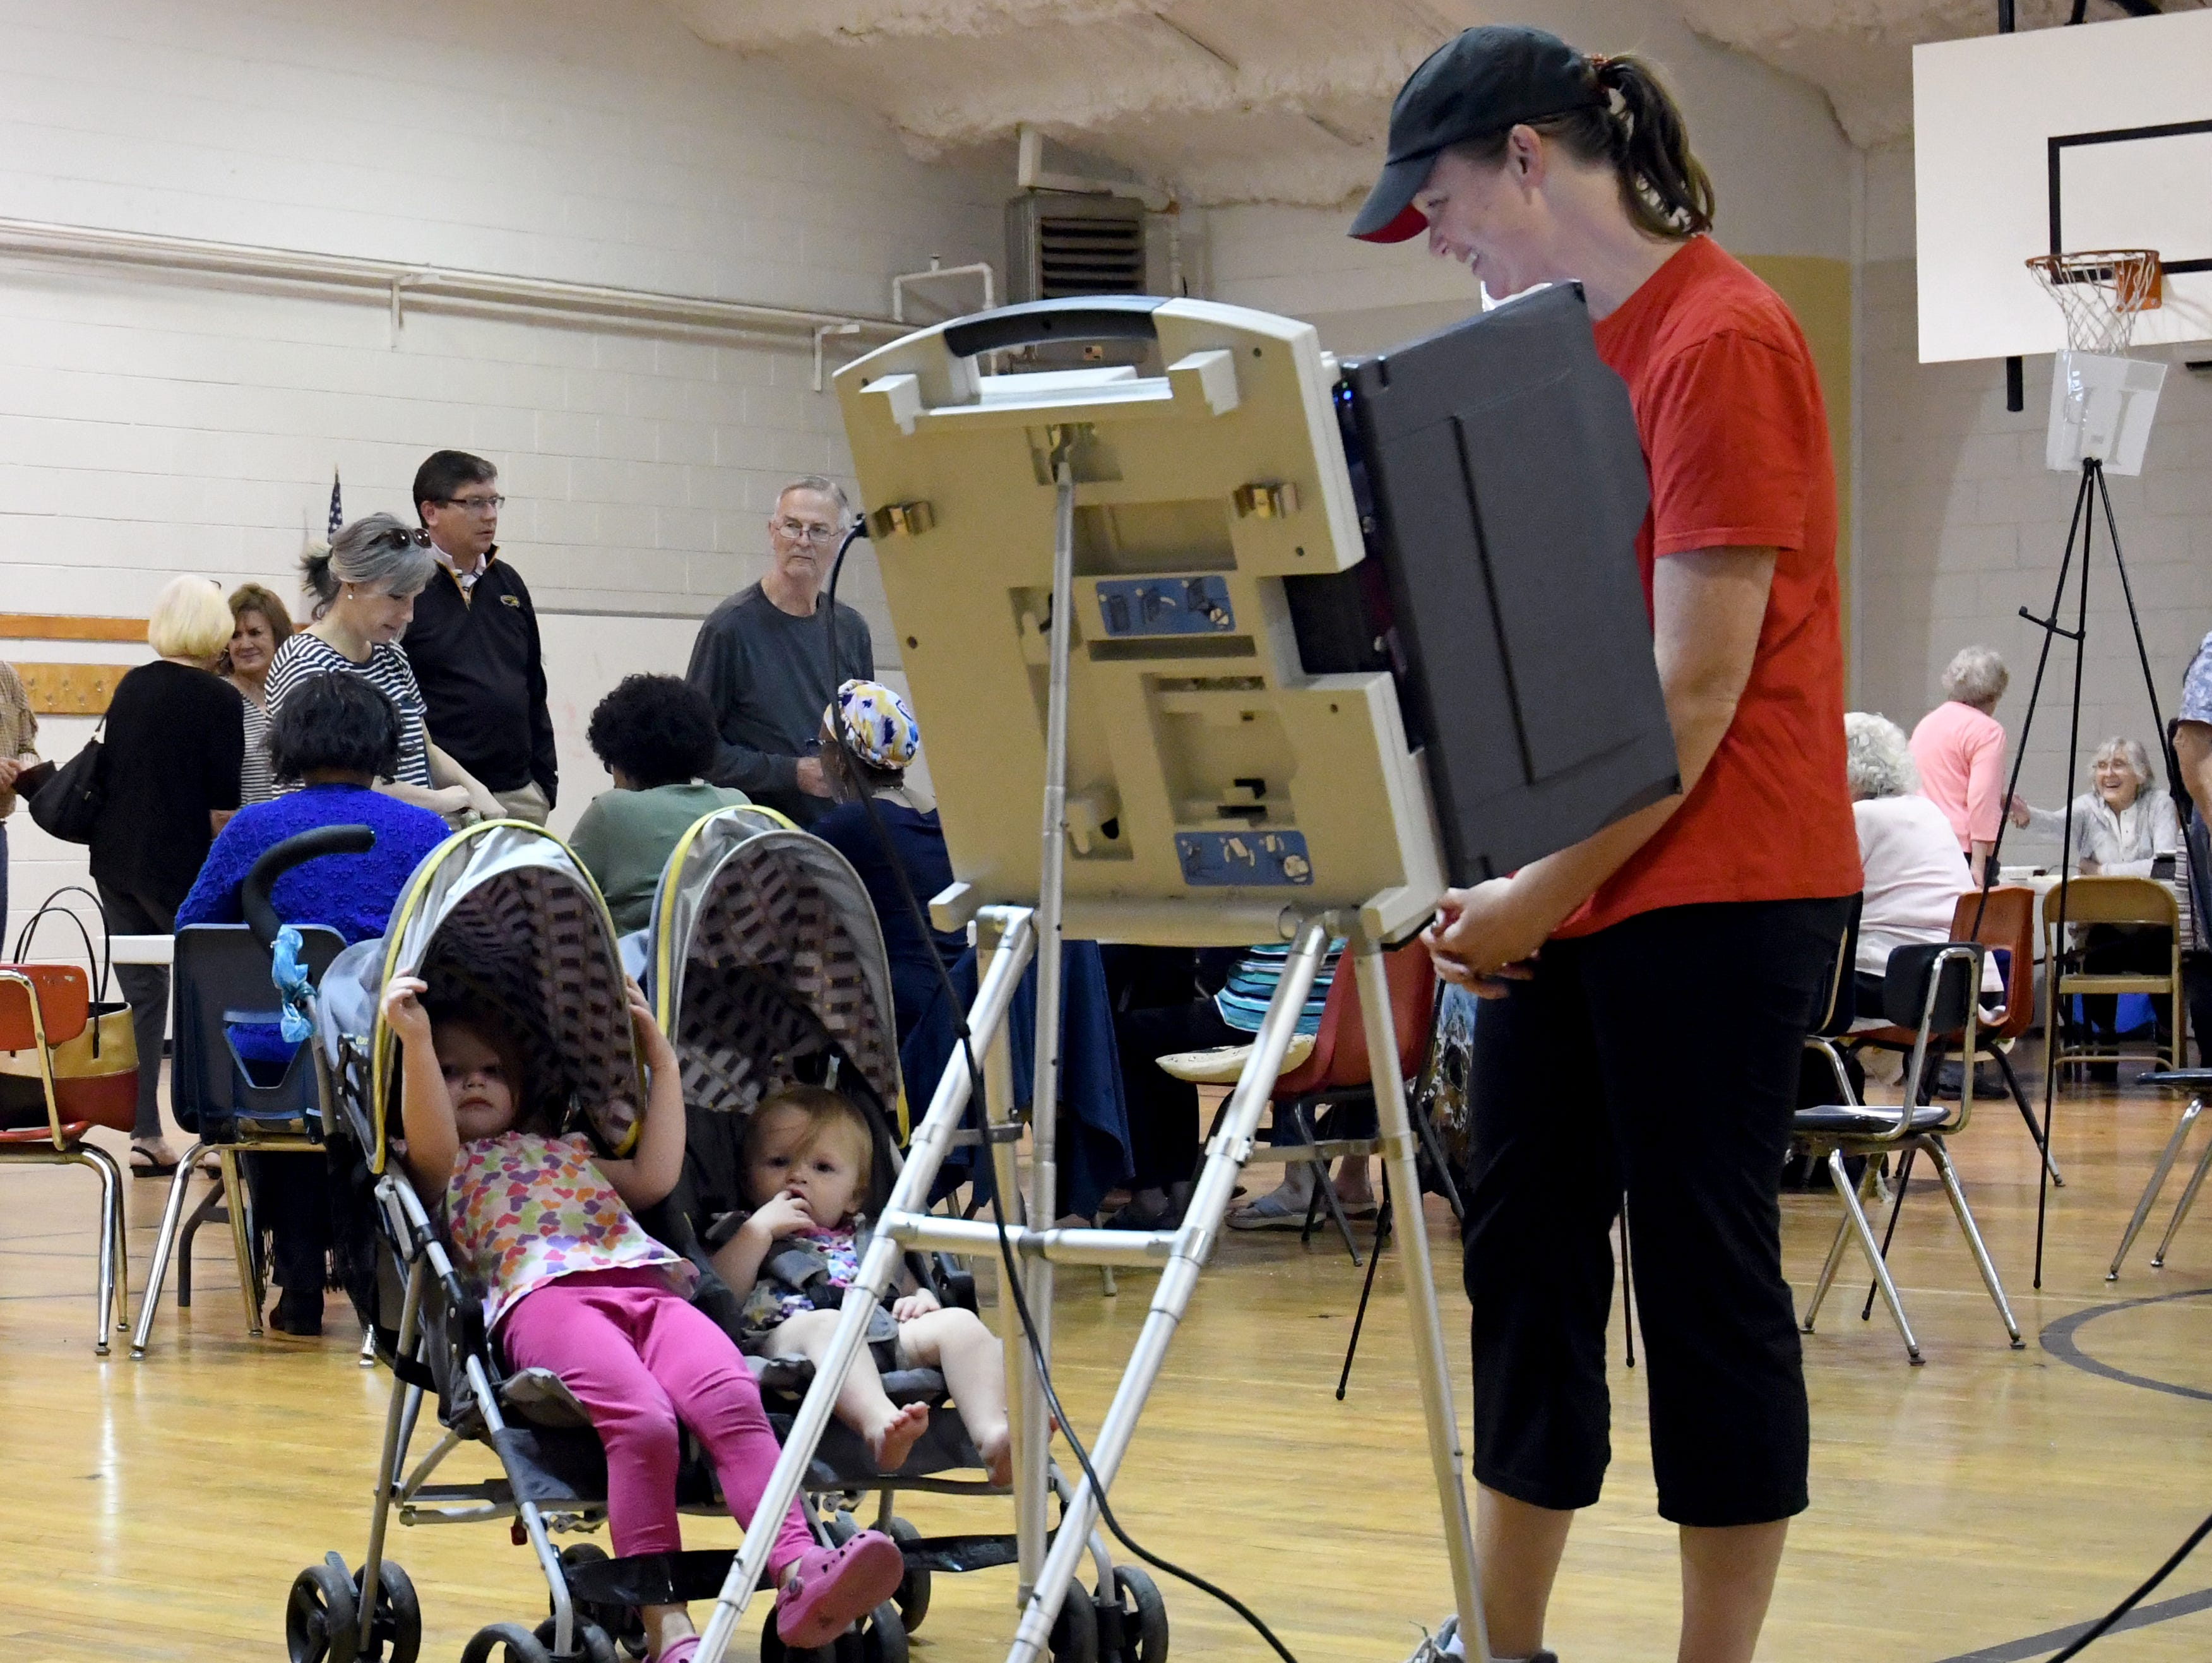 Hattiesburg resident resident Allison Smith looks at her children Kimberly, 3, and Catherine 1, as she votes during the midterm elections at the Thames Elementary precinct on Tuesday, November 6, 2018.